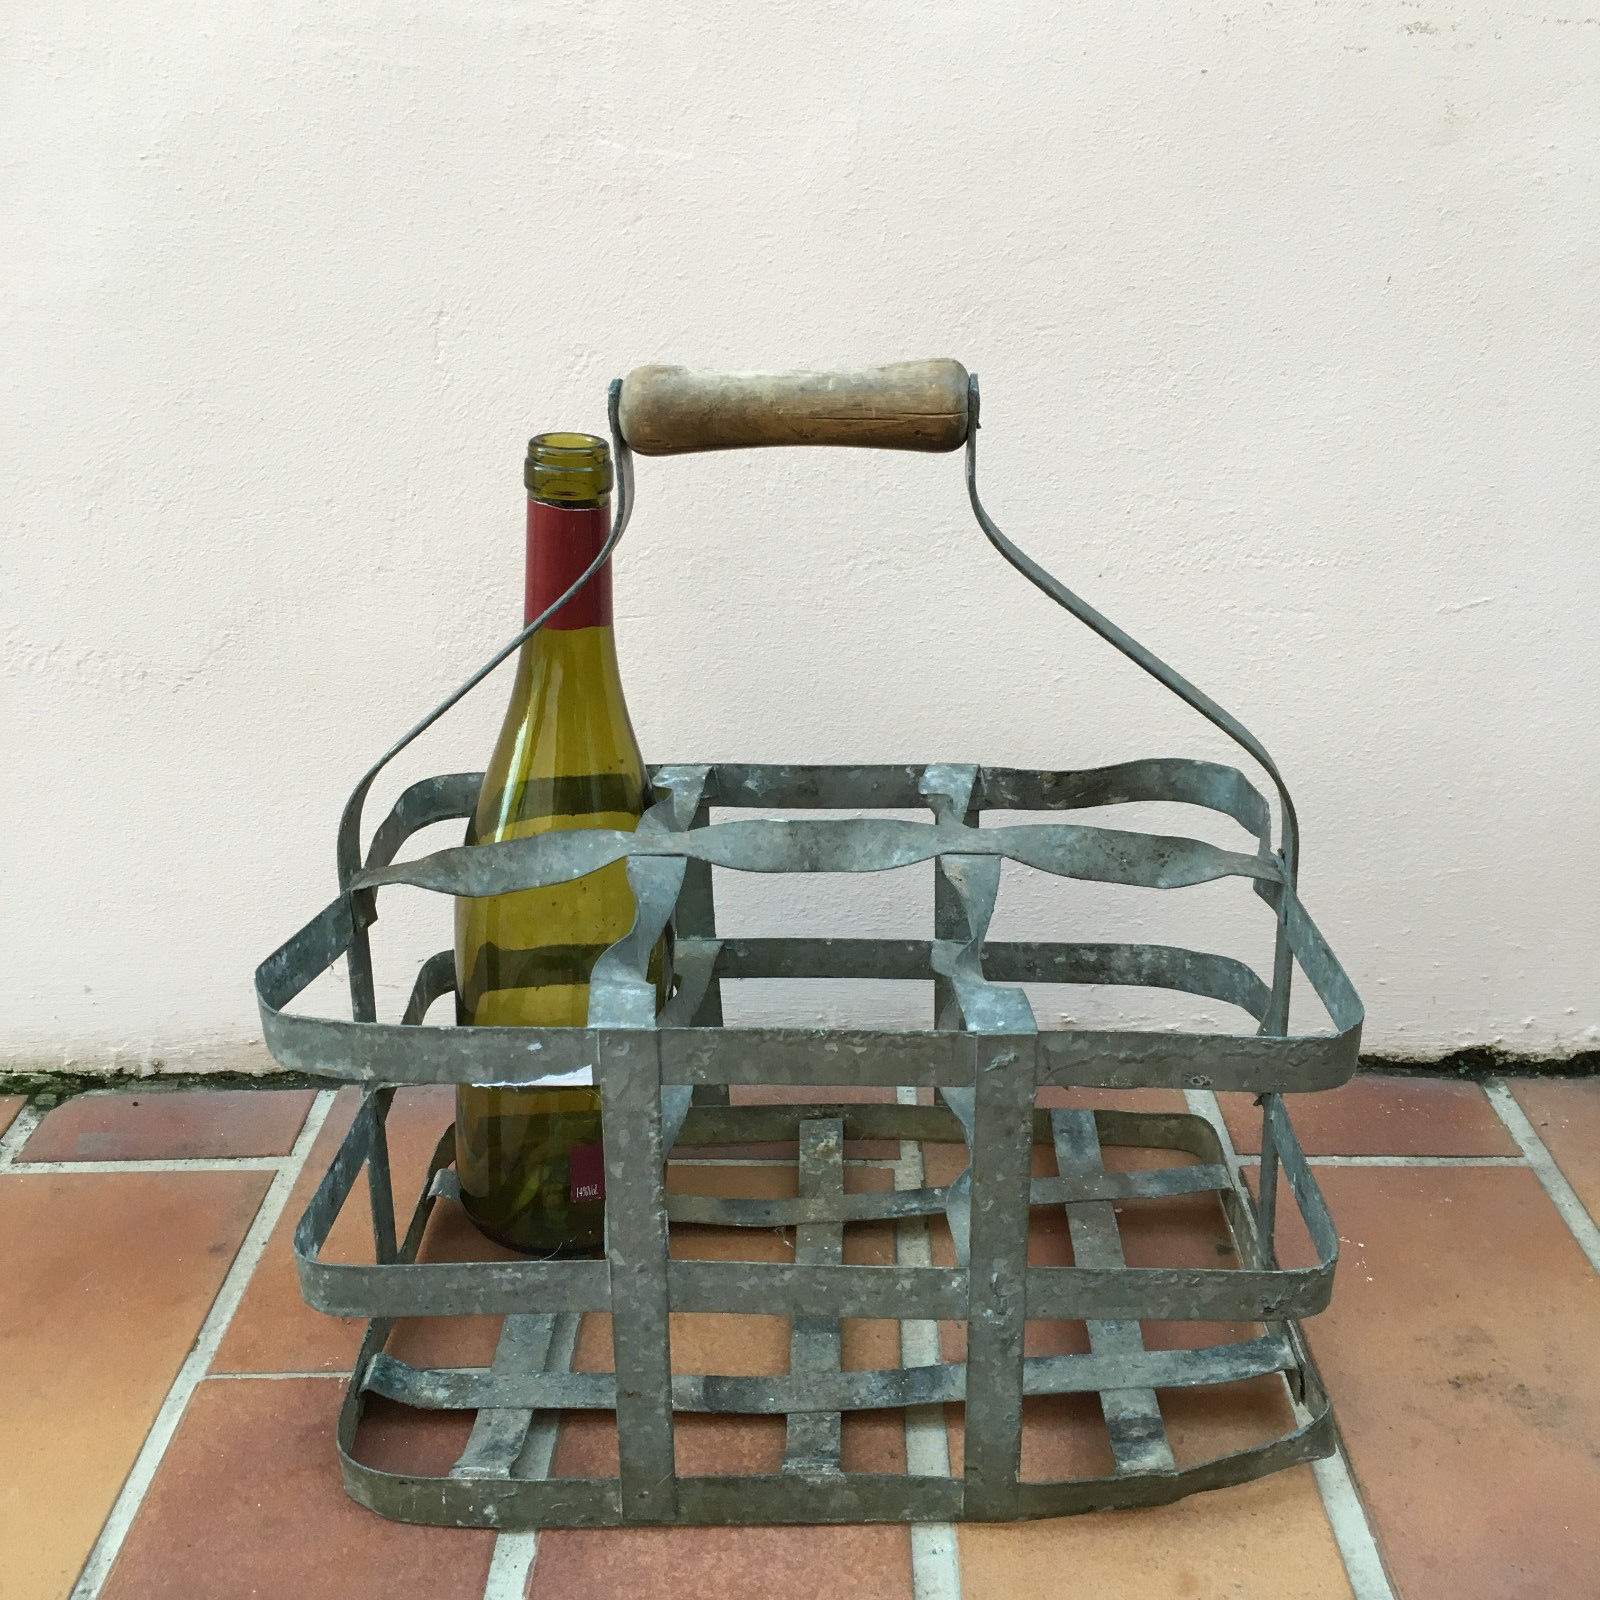 Antique vintage french handmade metal 6 zinc bottle wine carrier basket 12 ebay - Wire wine bottle carrier ...